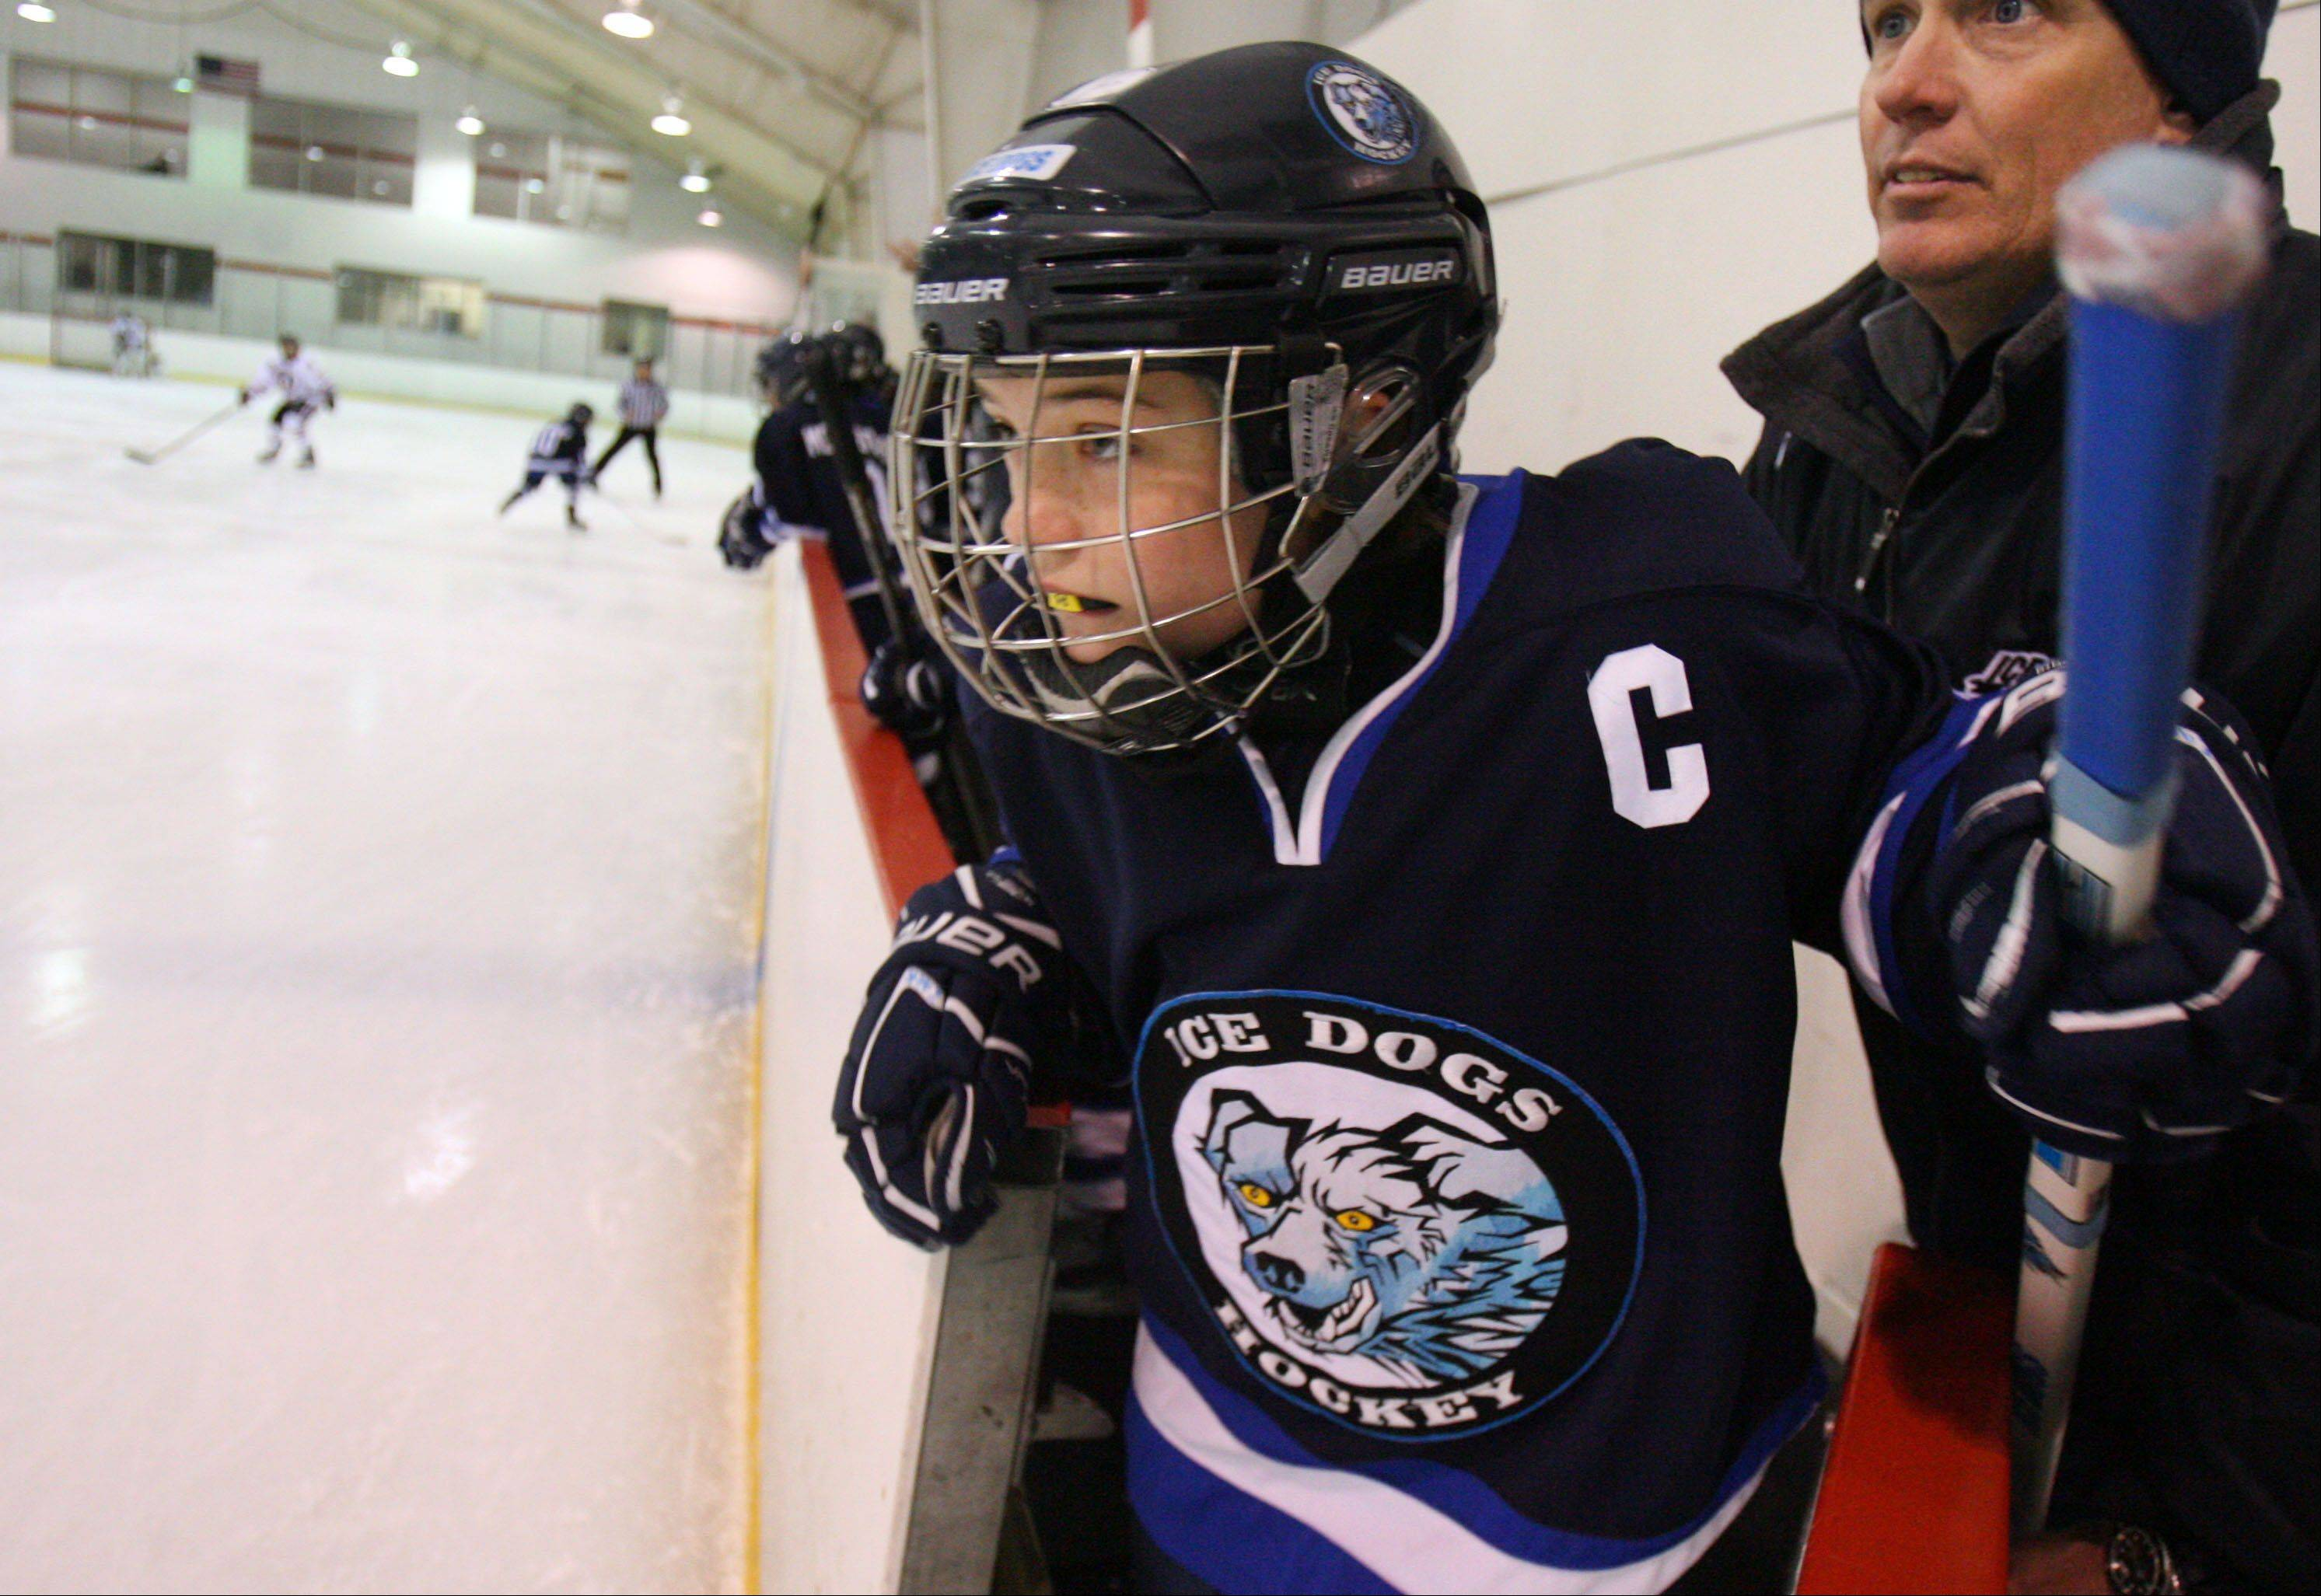 10-year-old Madison Zack gets ready to enter the ice during a recent game in Addison. Madison is the captain of the boys Ice Dogs hockey team.